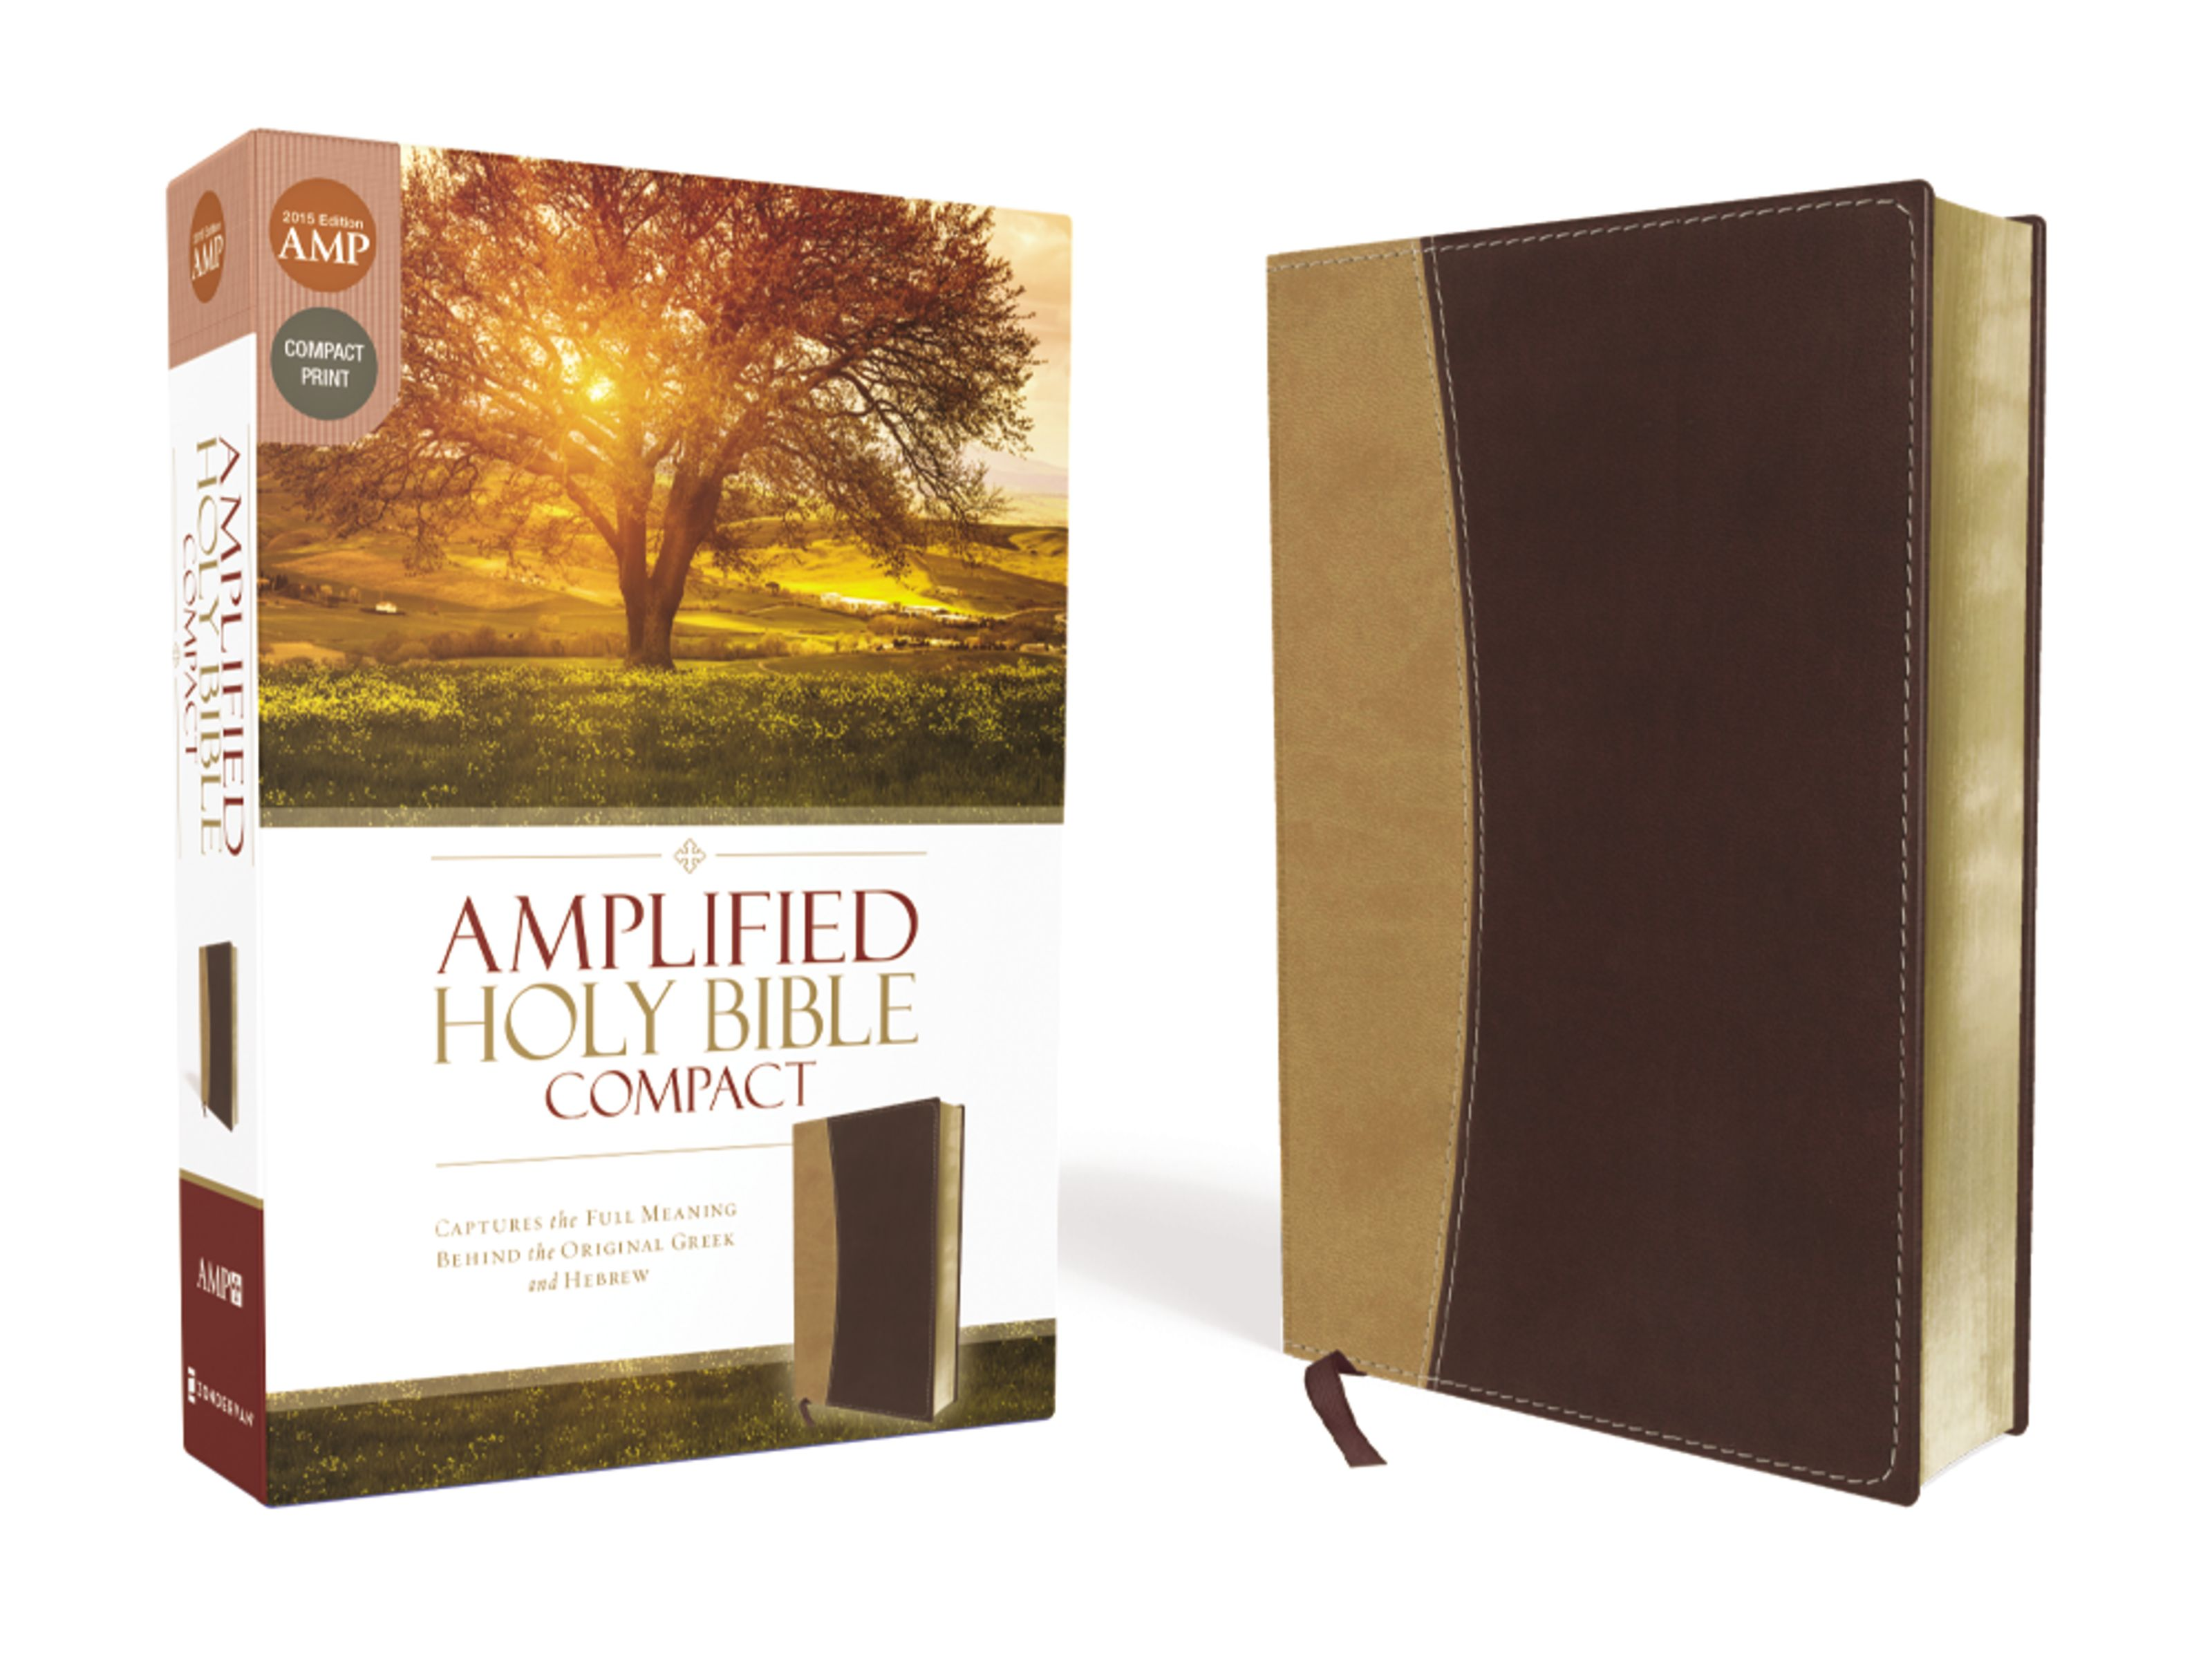 Amplified Holy Bible, Compact, Imitation Leather, Tan/Burgundy